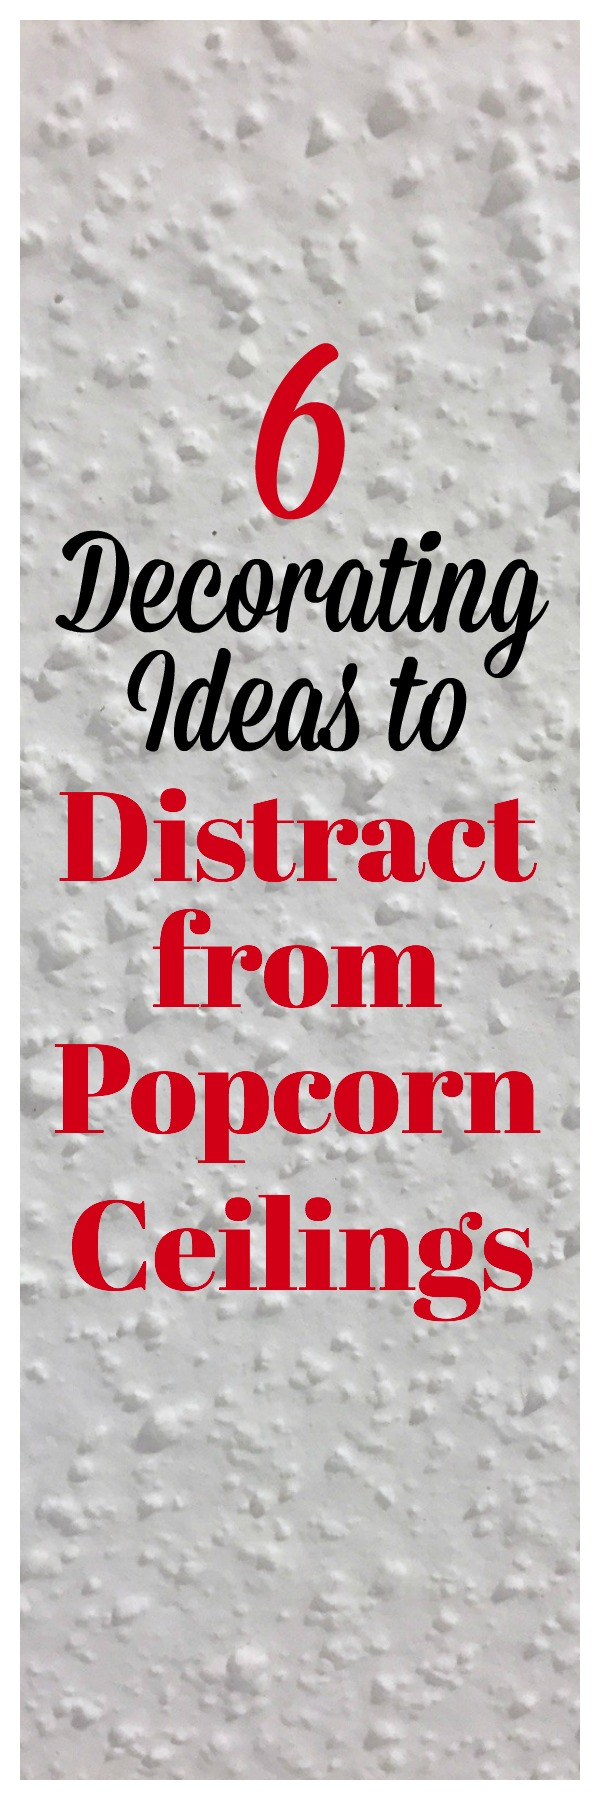 Decorating Ideas for How to Hide Popcorn Ceilings | Popcorn Ceiling Makeover | Popcorn Ceiling Cover | Popcorn Ceiling Ideas